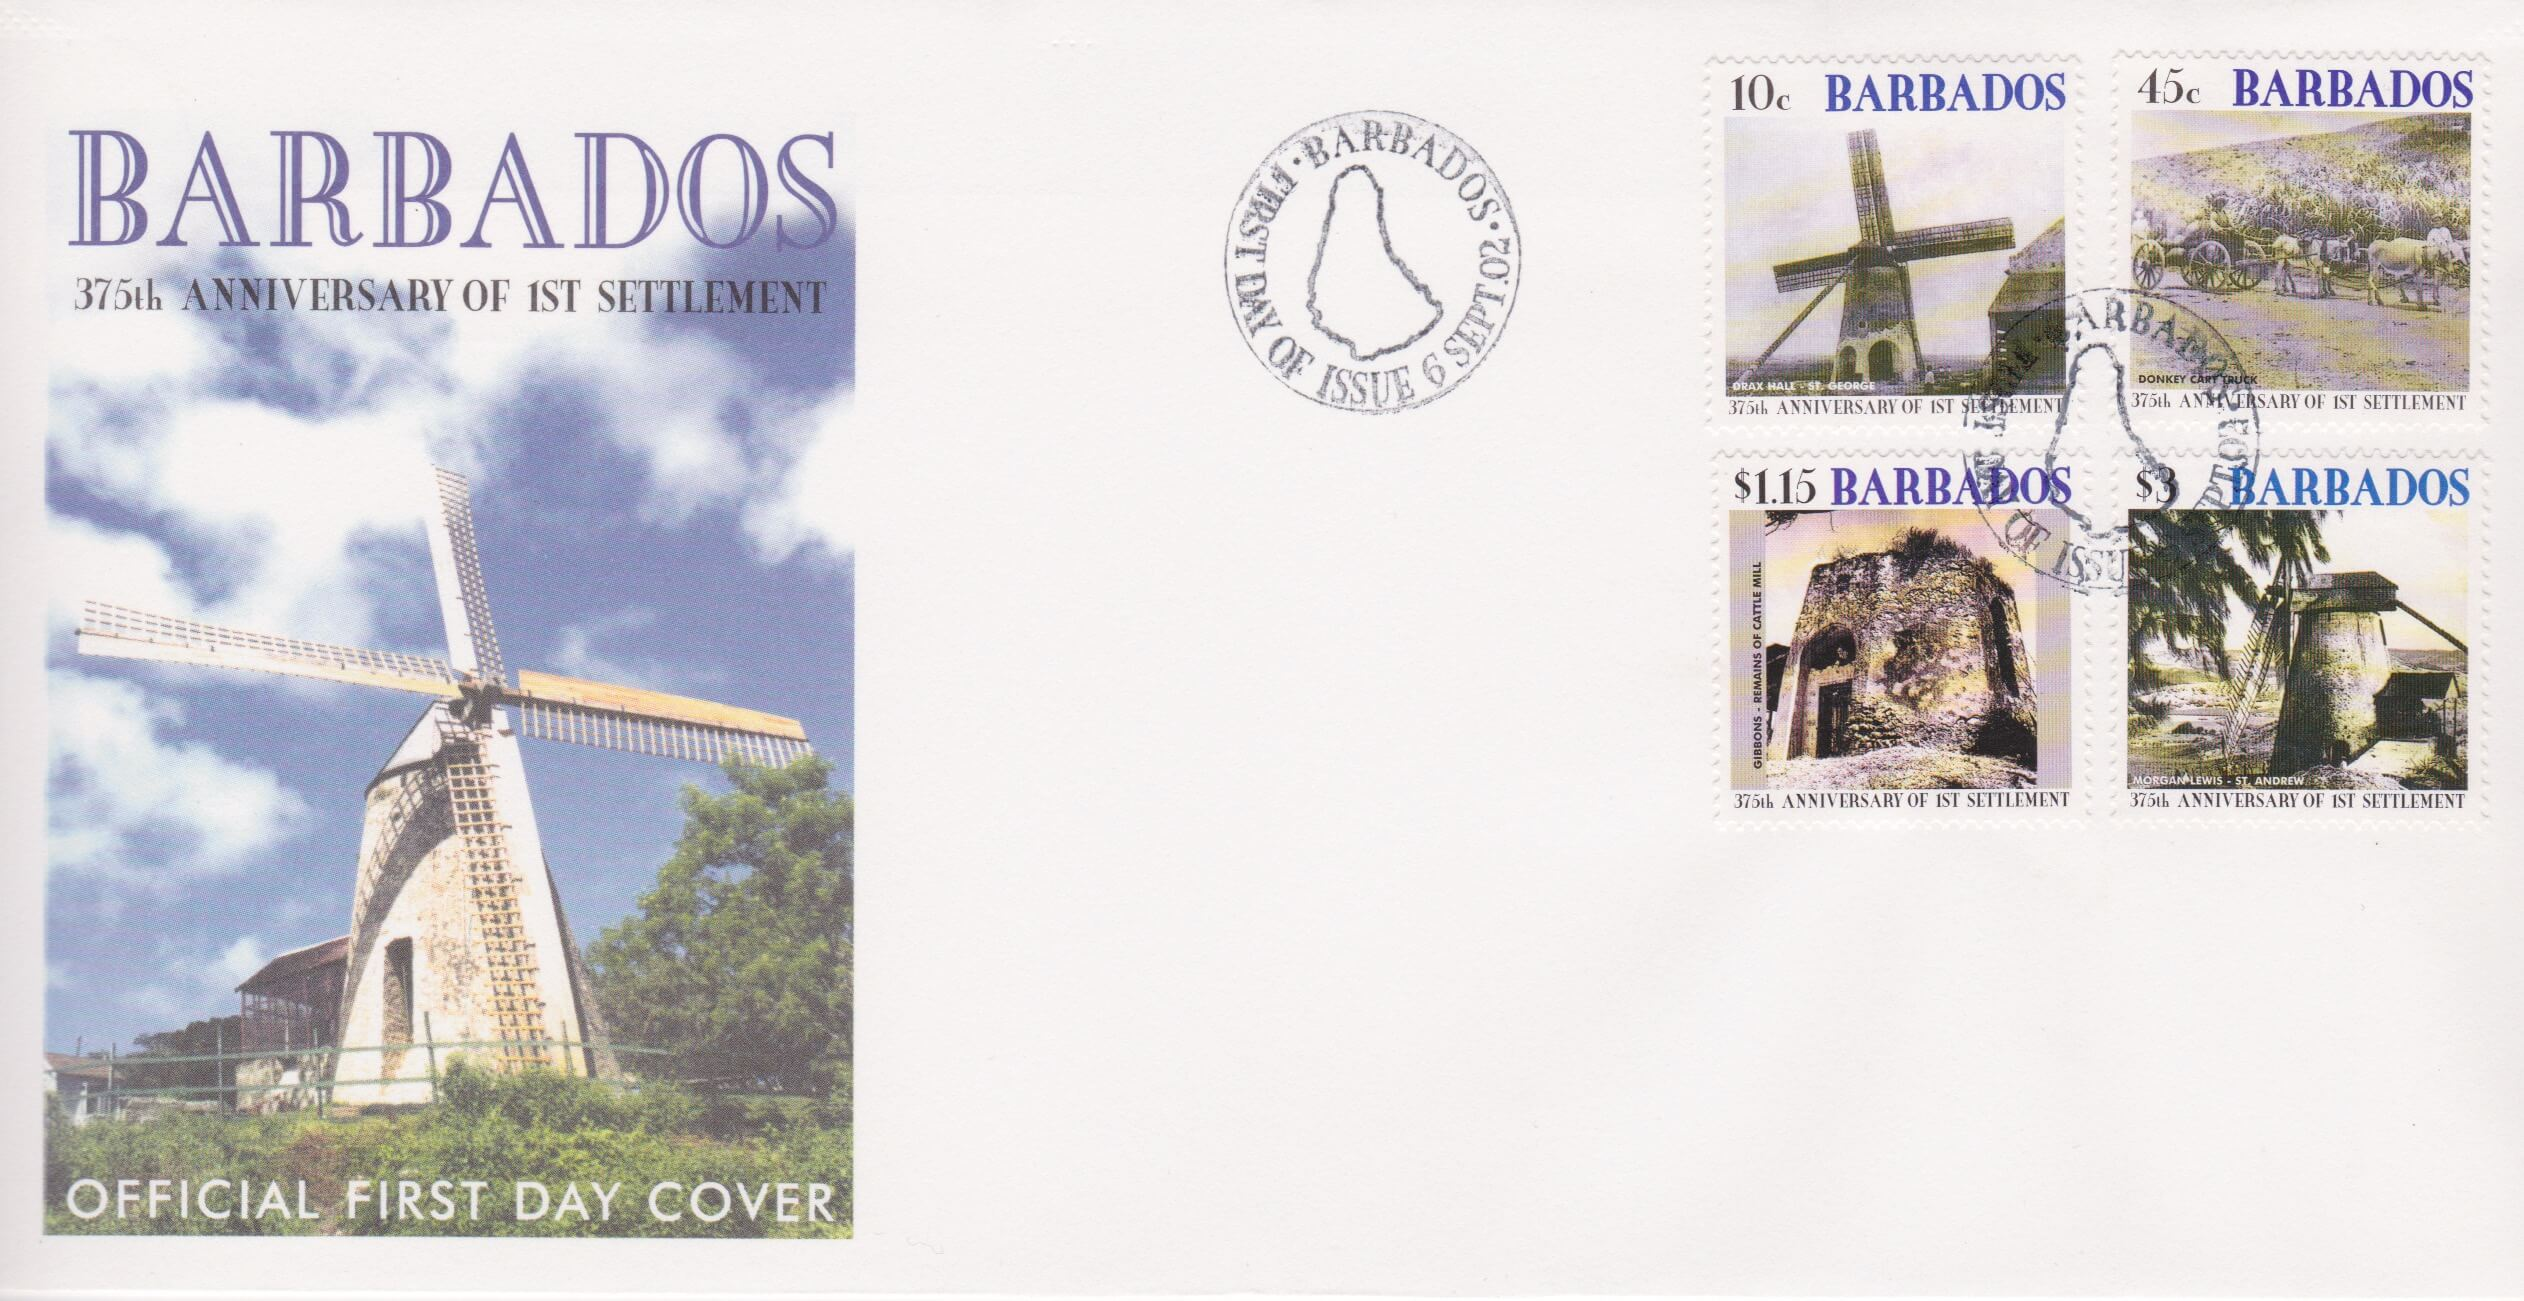 Barbados 375th Anniversary of the 1st Settlement FDC